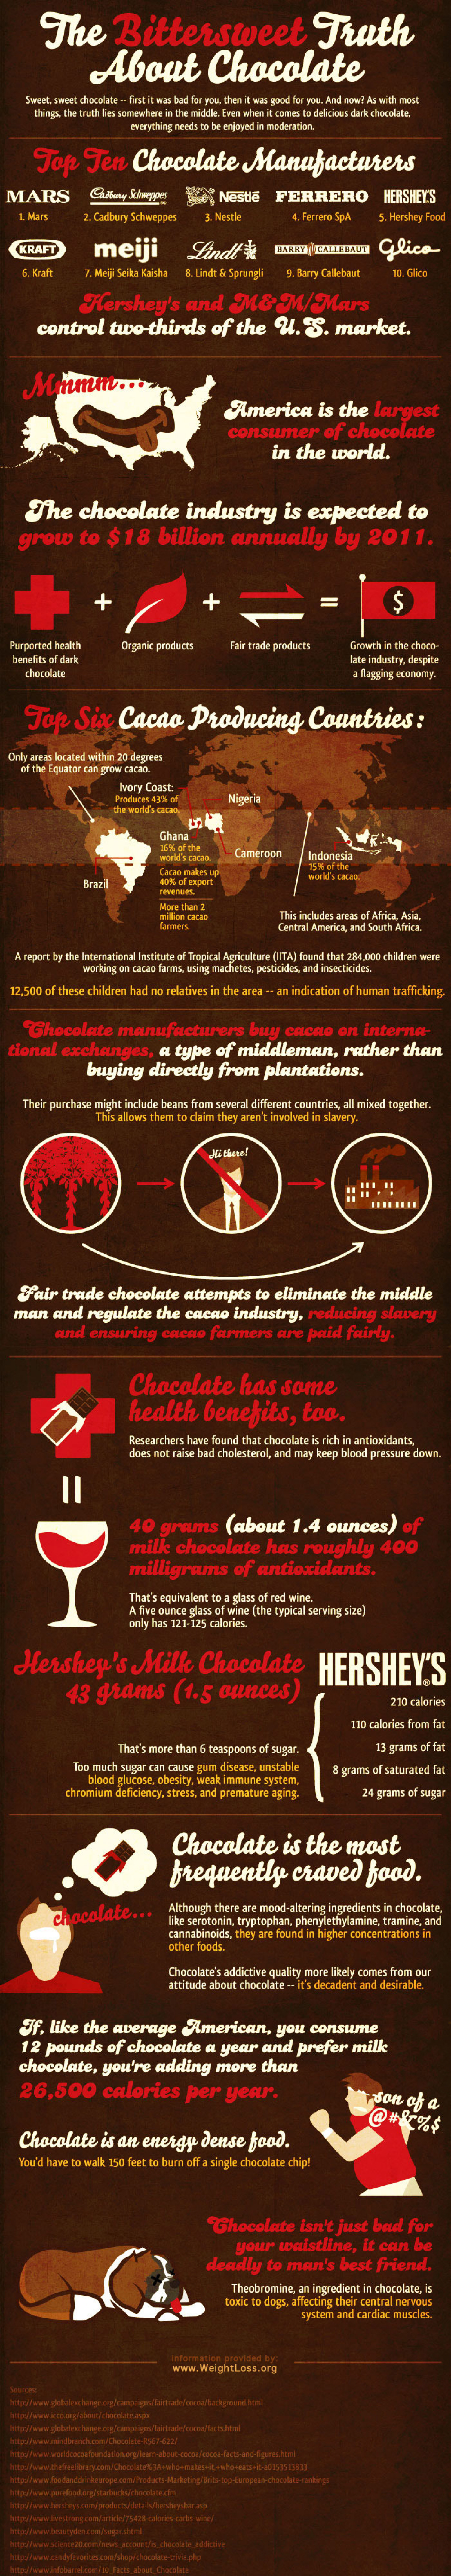 The Chocolate Truth Infographic